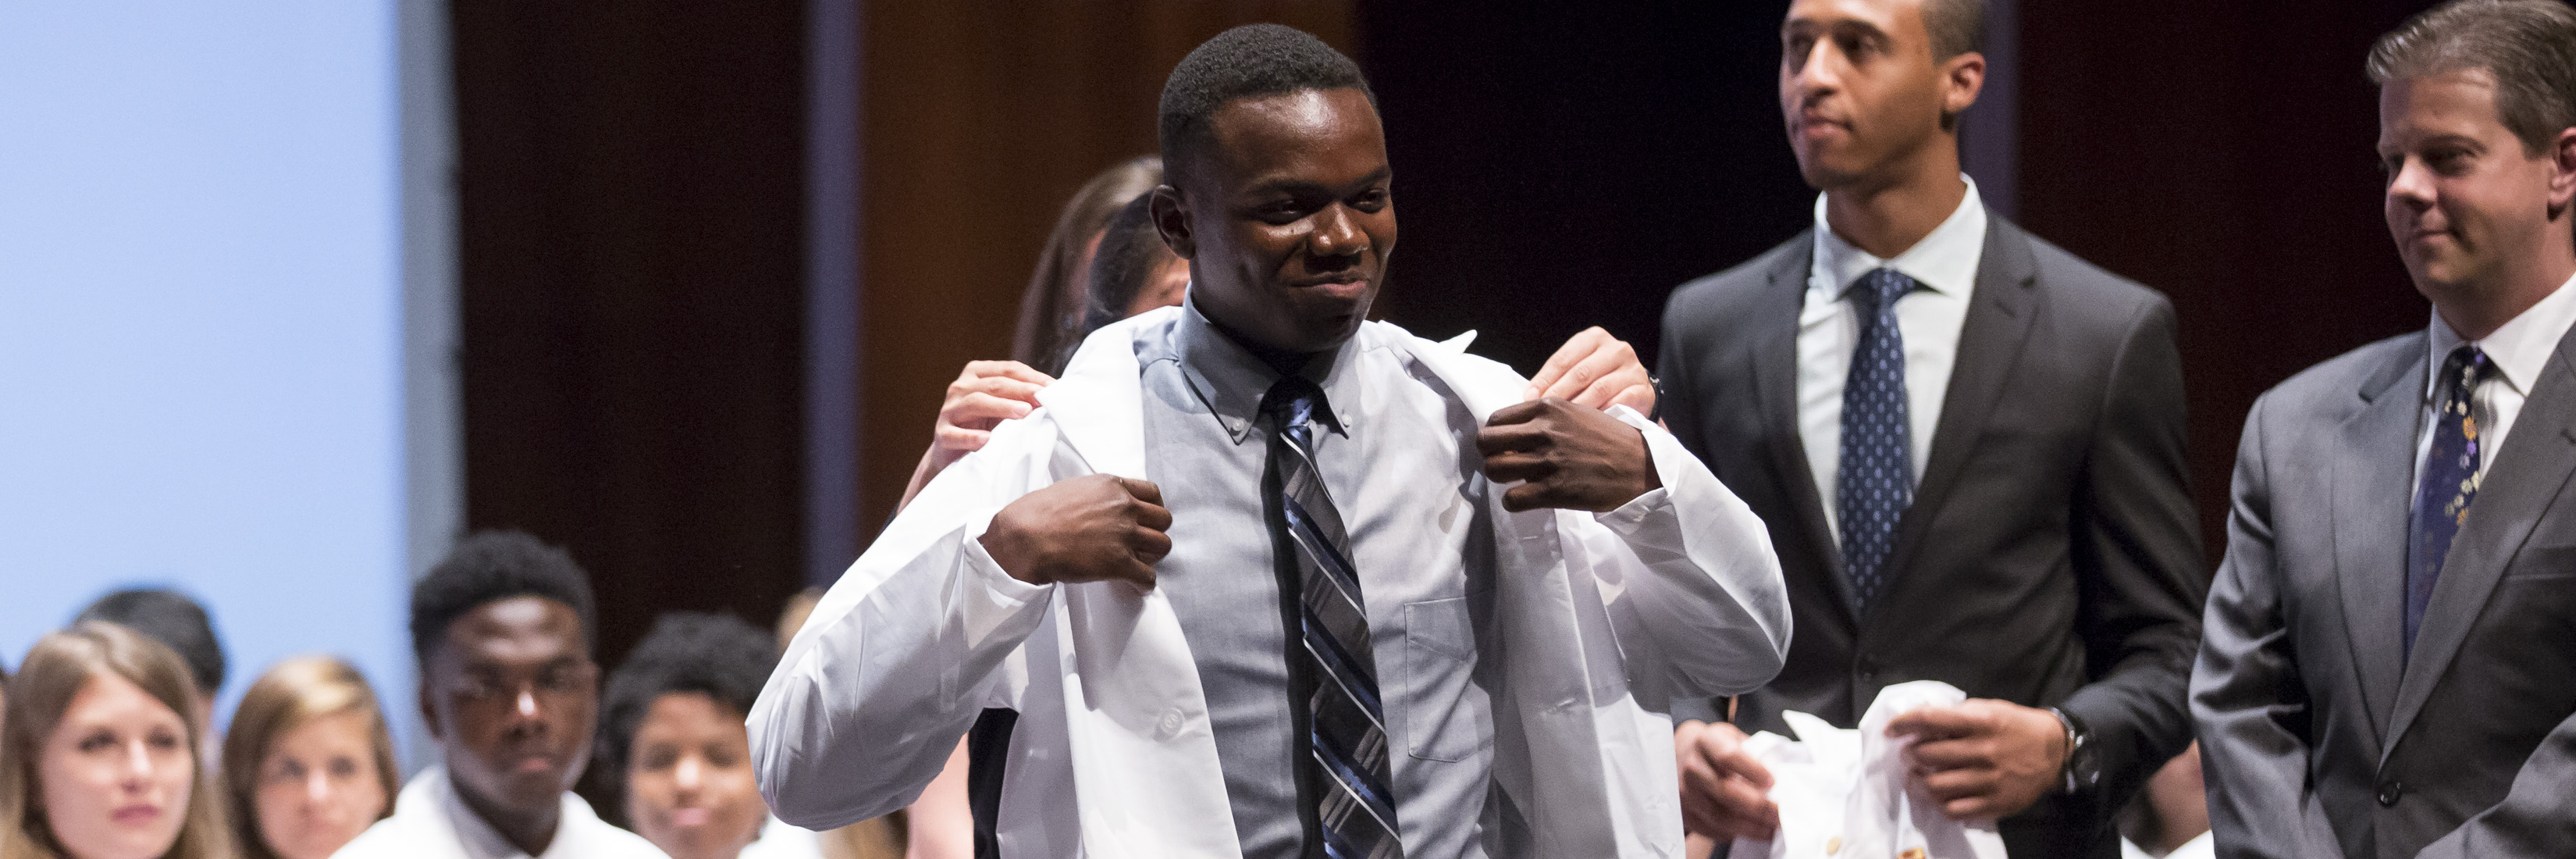 Medical student at white coat ceremony